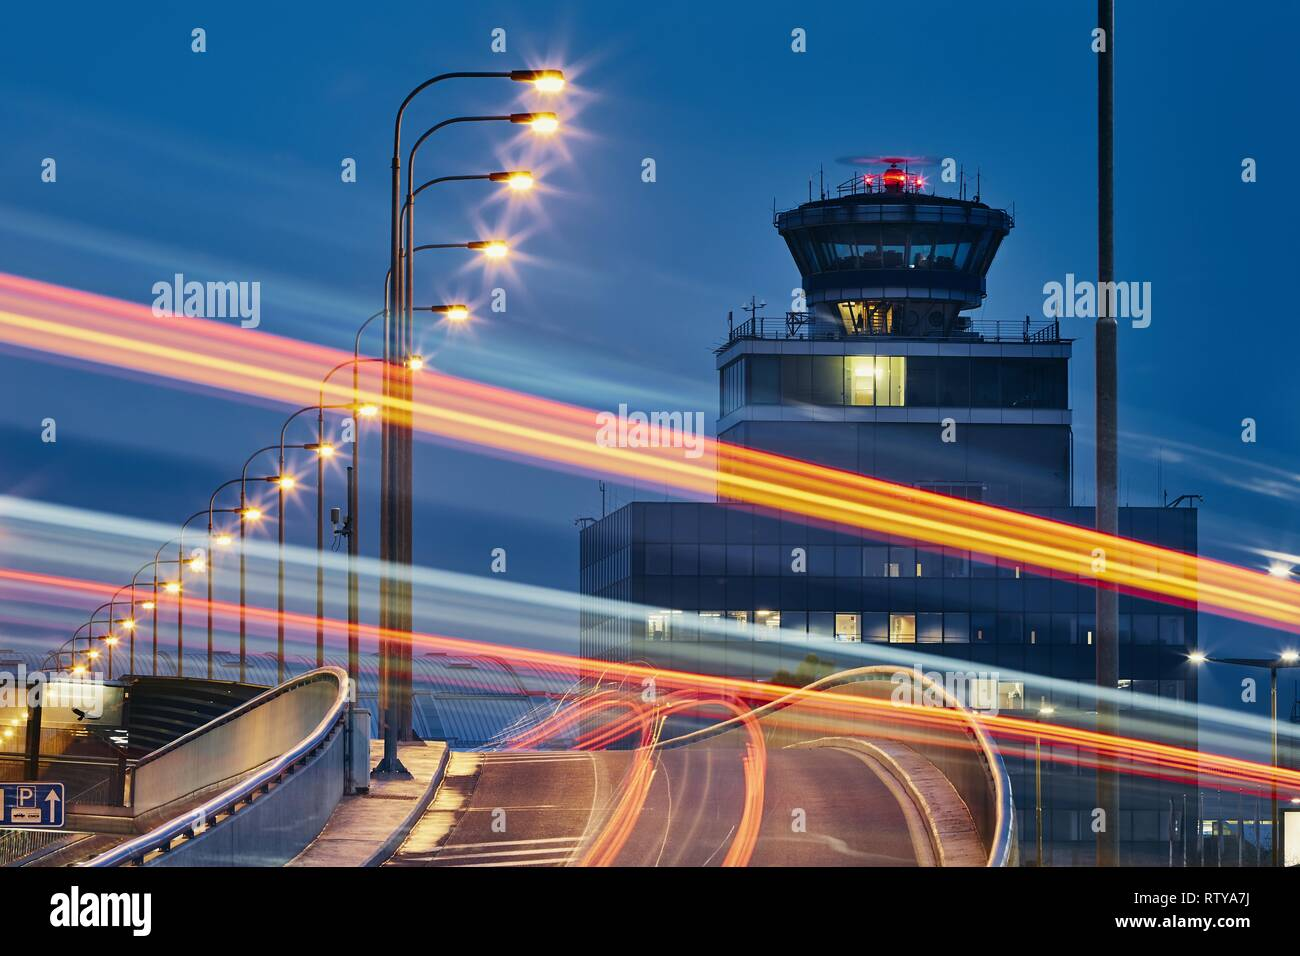 Light trails of the cars on the road to airport against air traffic control tower. Stock Photo